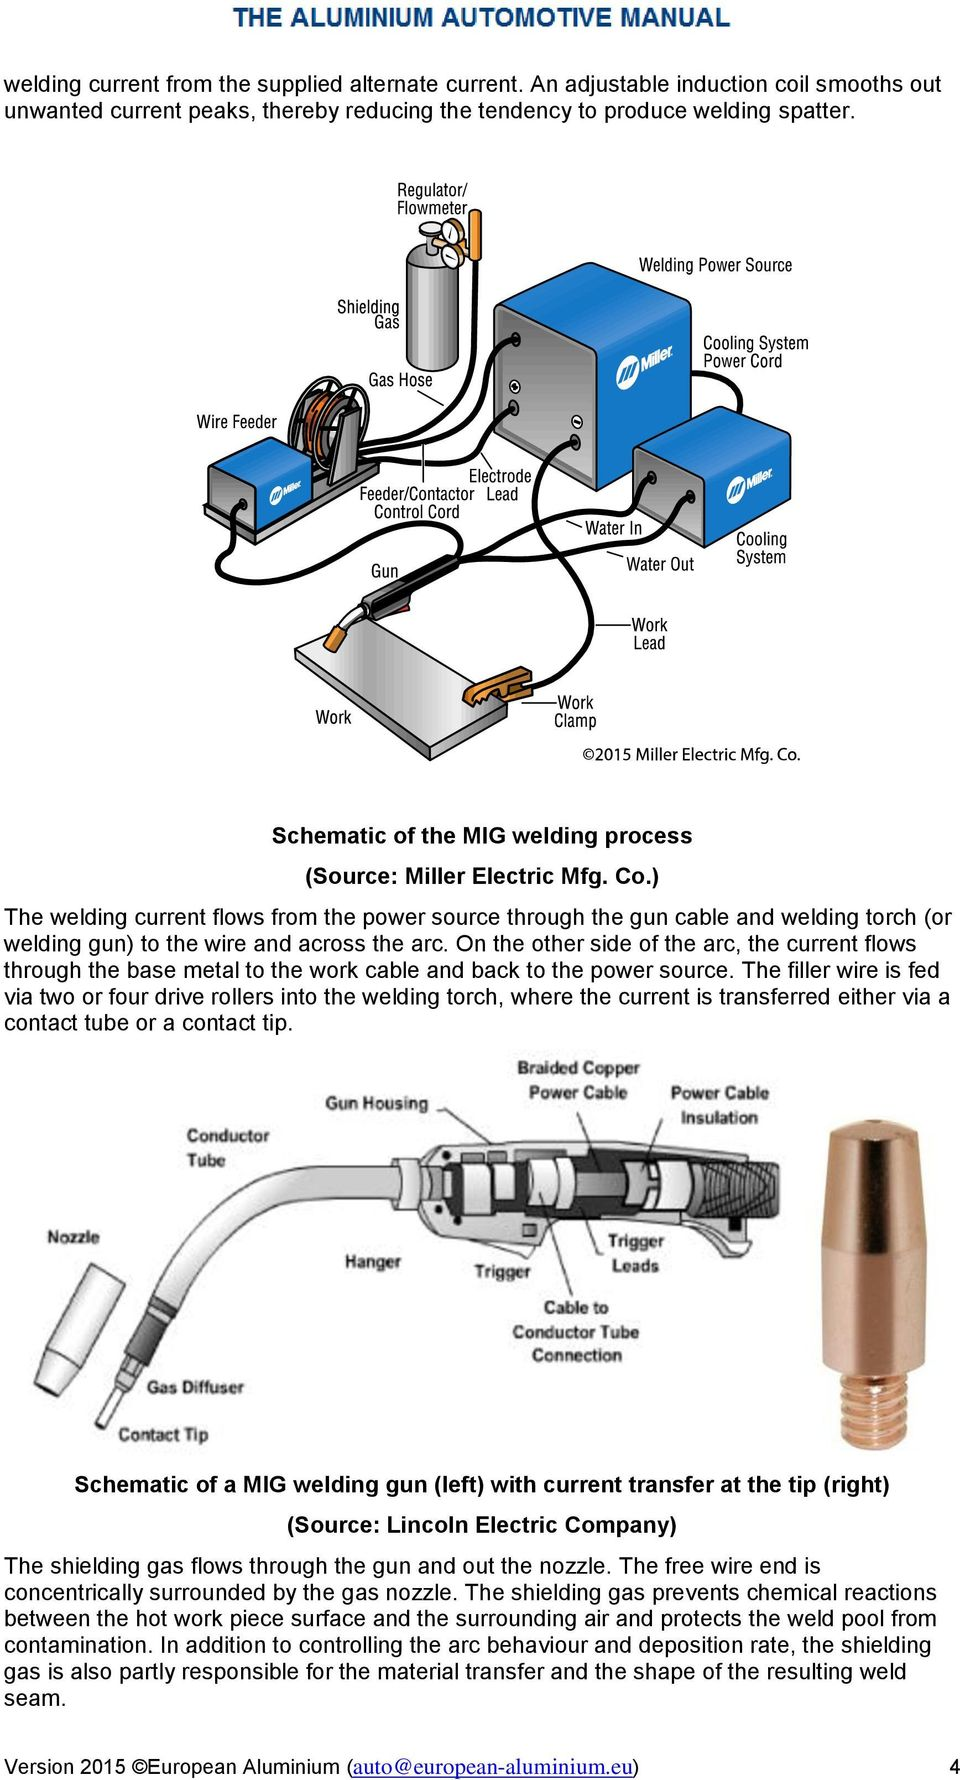 Aluminium Automotive Manual Joining Pdf Diagram Of Welding Torch The Current Flows From Power Source Through Gun Cable And